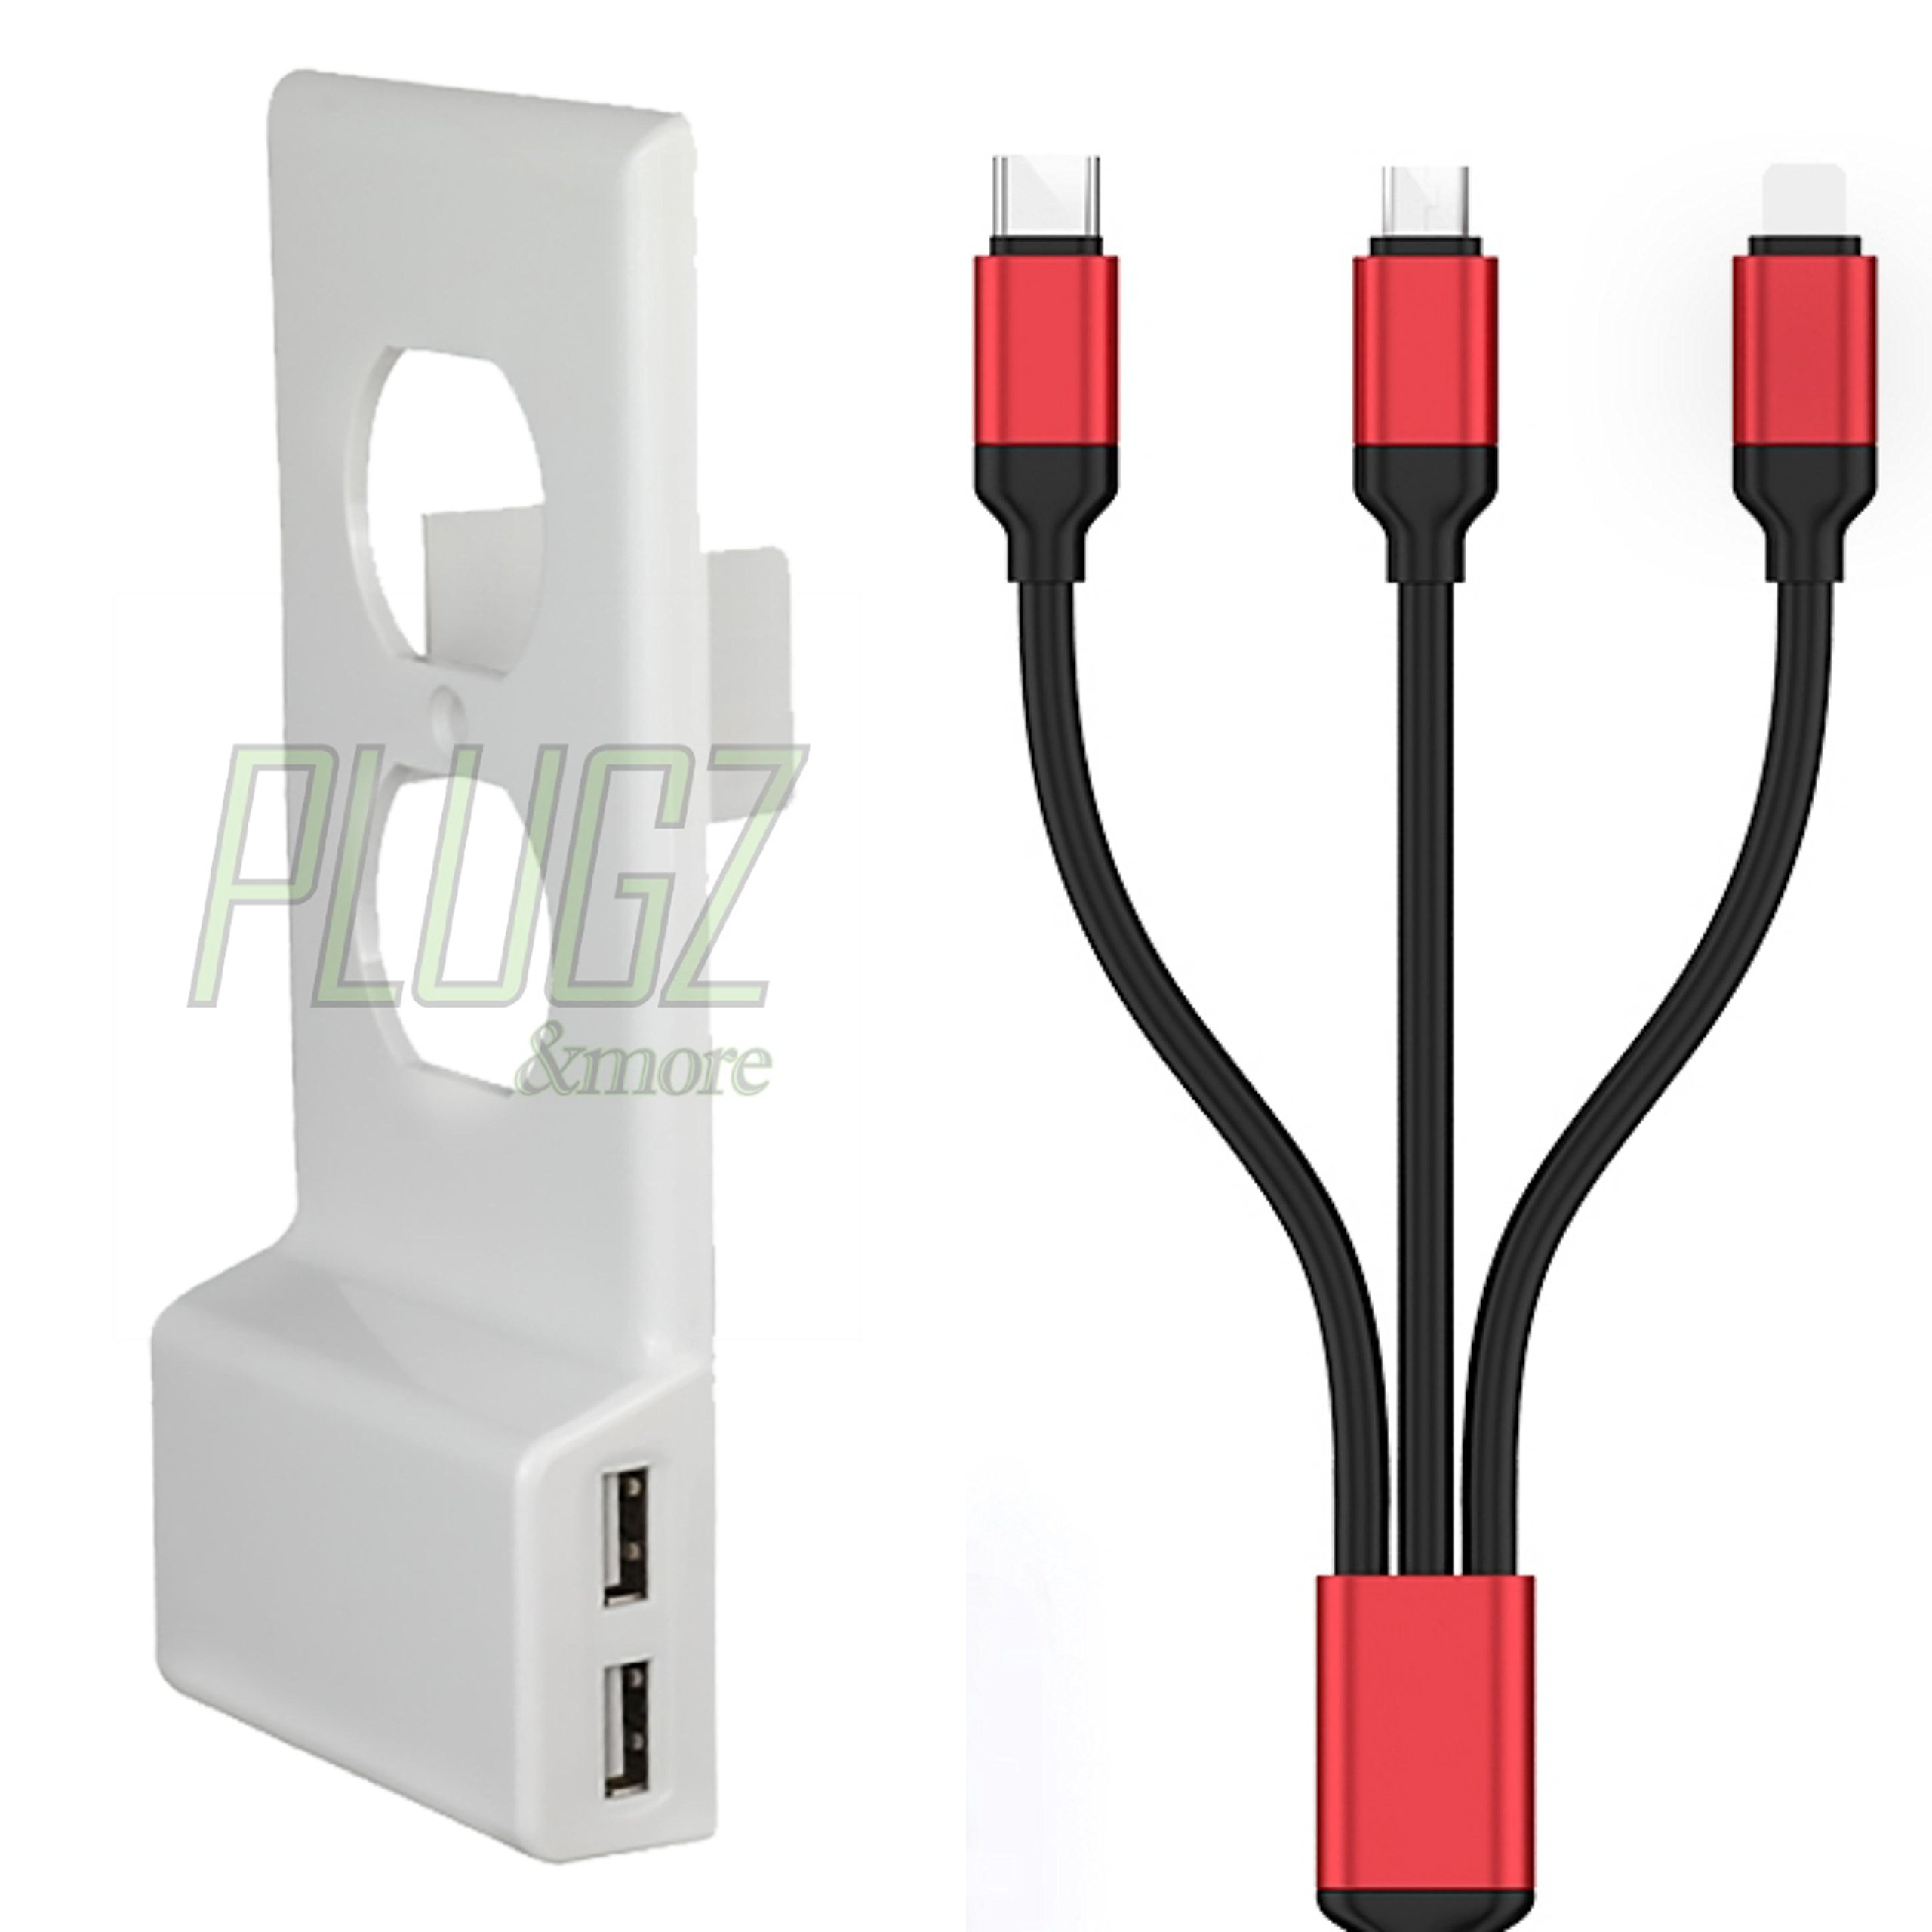 USB Outlet Wall Plate Cover Upgrade Installs Over Outlet, with 3 in 1 USB charging cable, Dual Charging Ports for Cellphones, Tablets, Androids, Power Banks & Fire Sticks (White) by PLUGZ and more